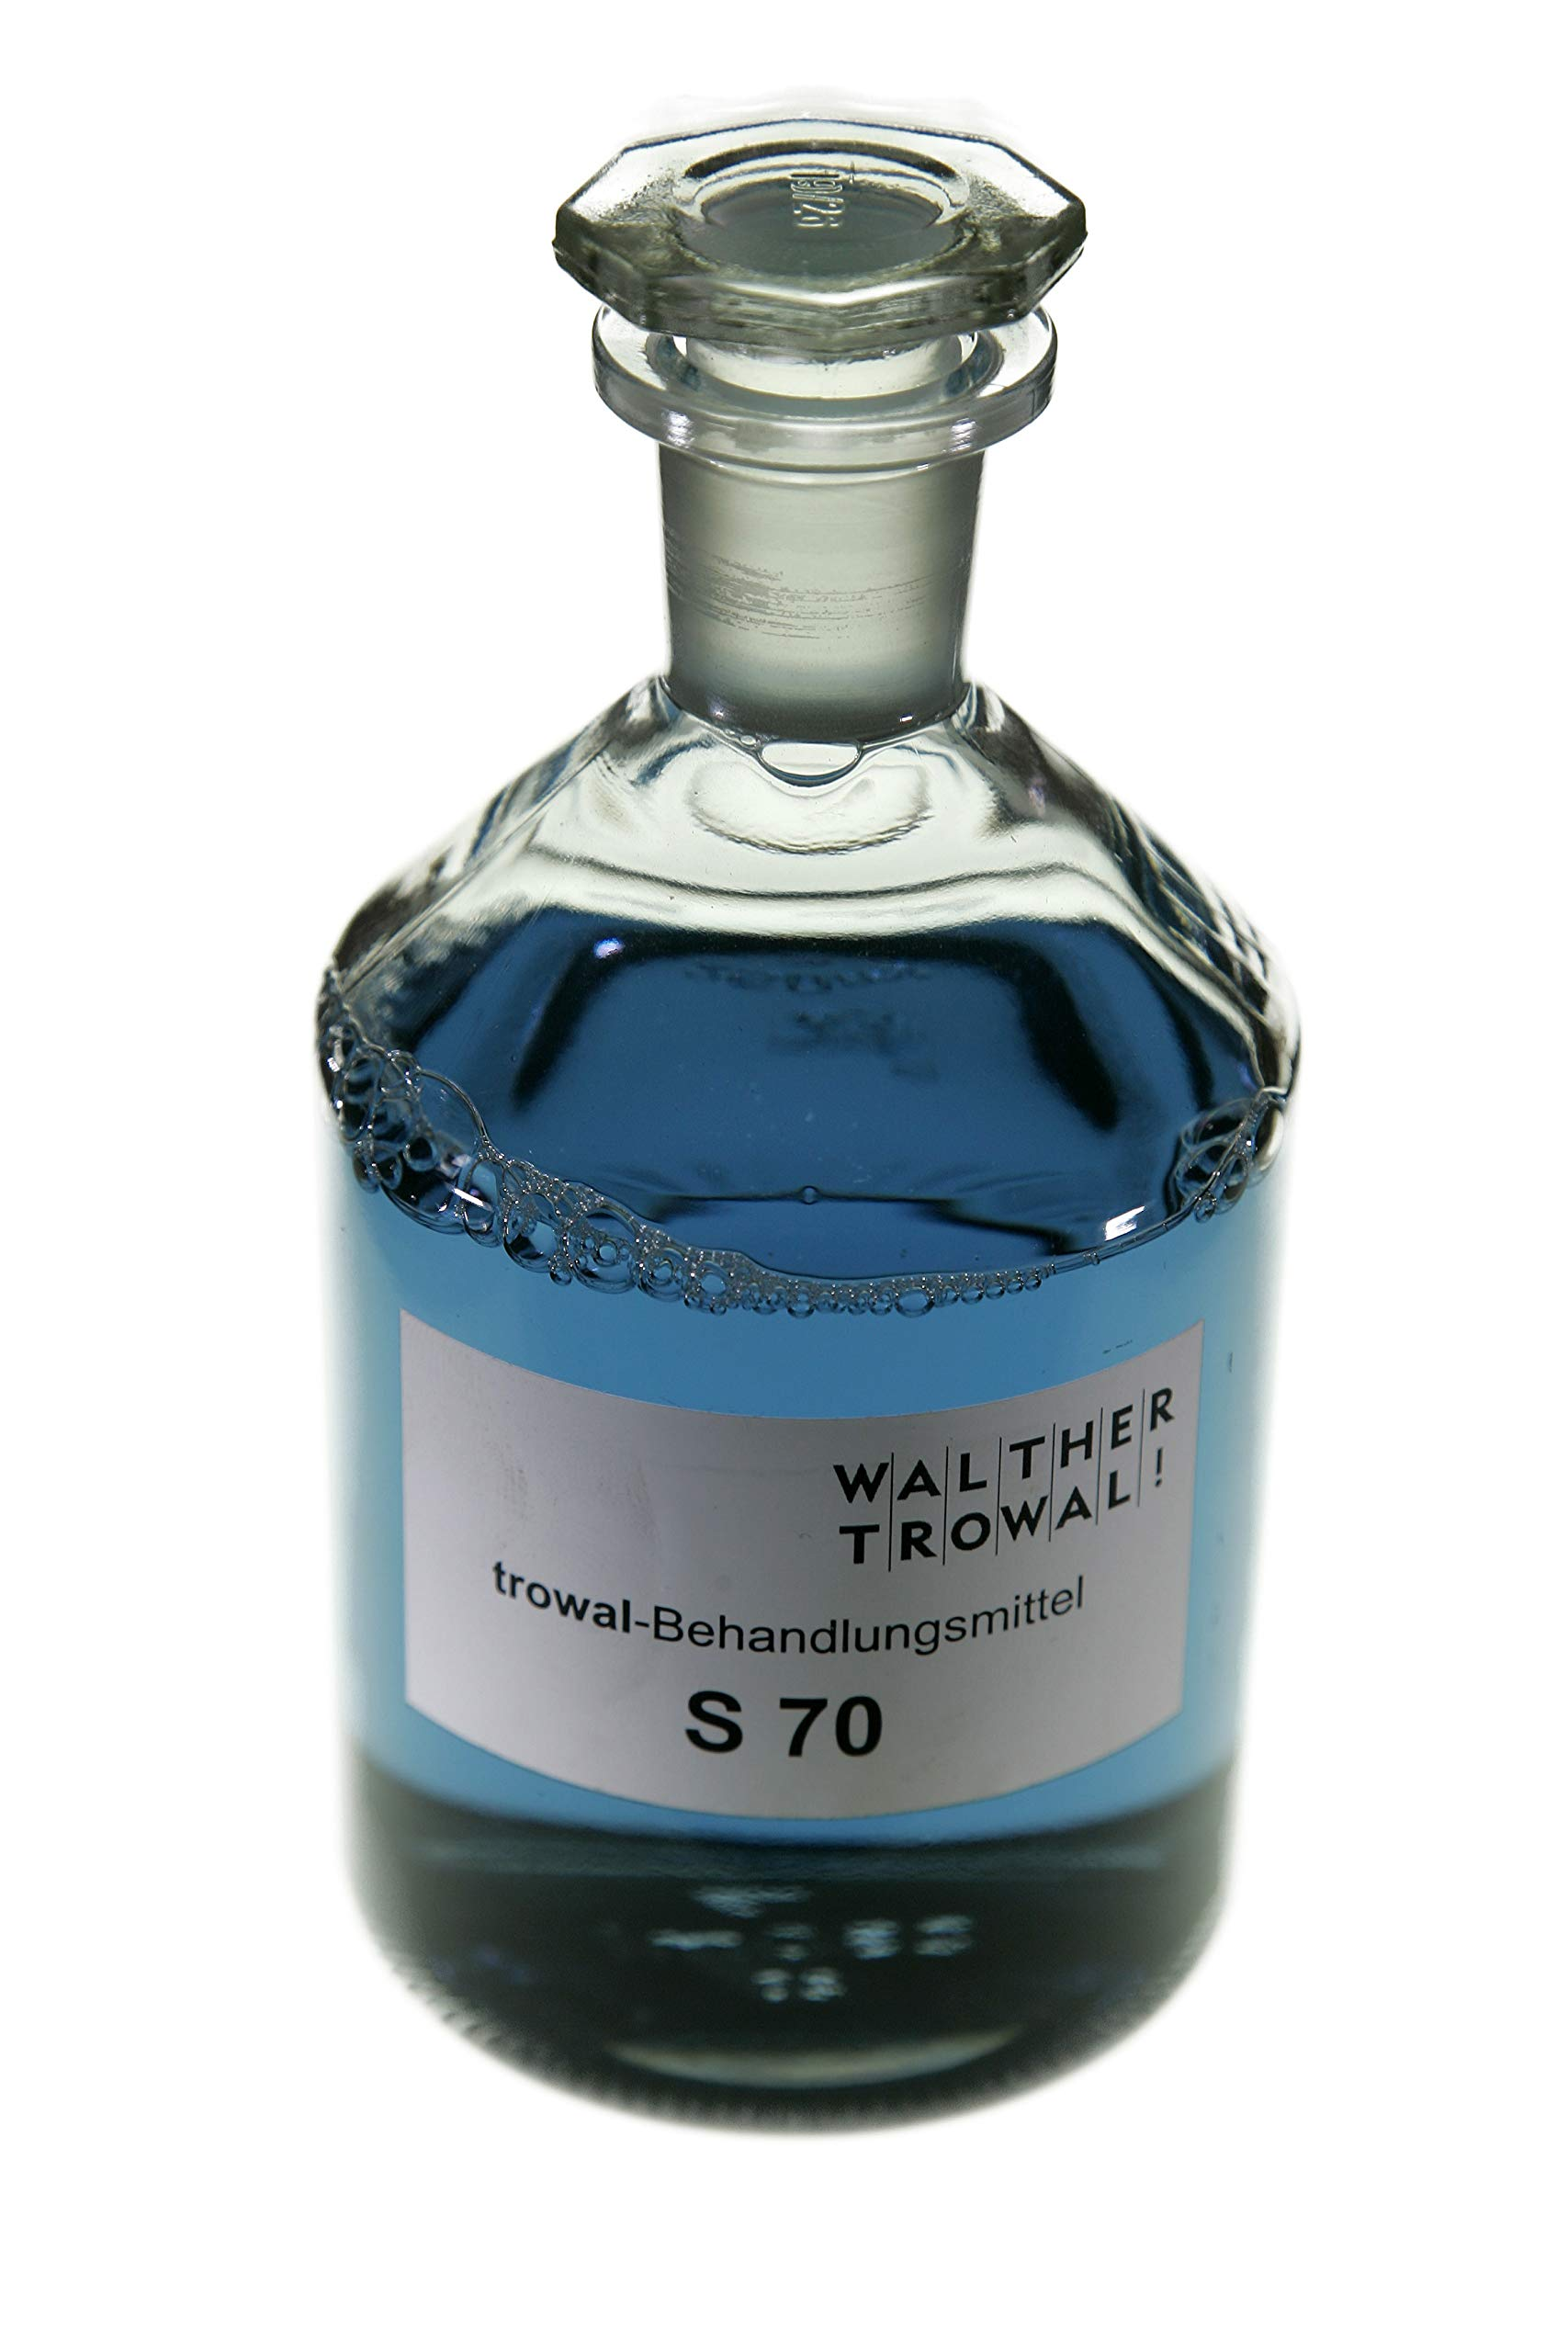 Walther Trowal S 70, Cleaning with Corrosion Protection Liquid Compound, 25 KG Container